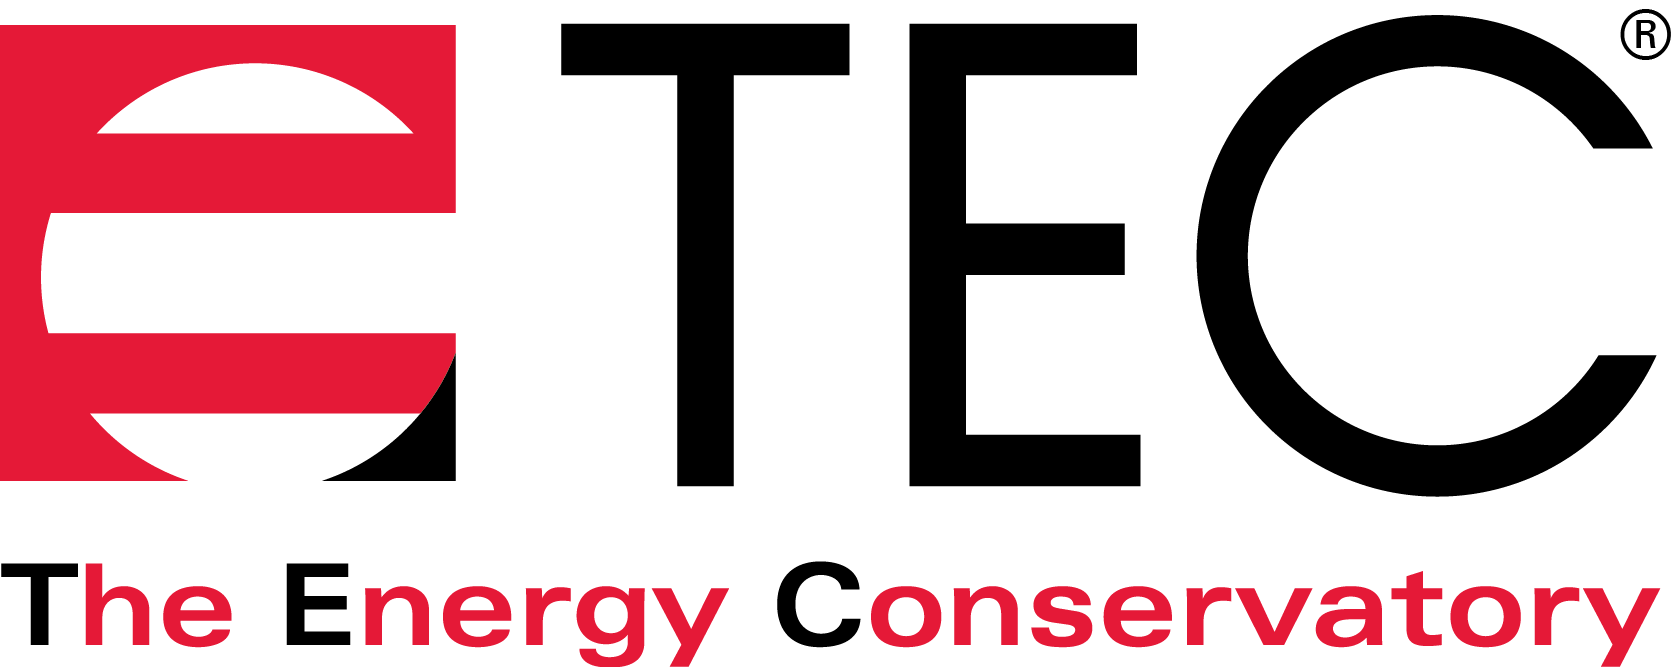 The Energy Conservatory